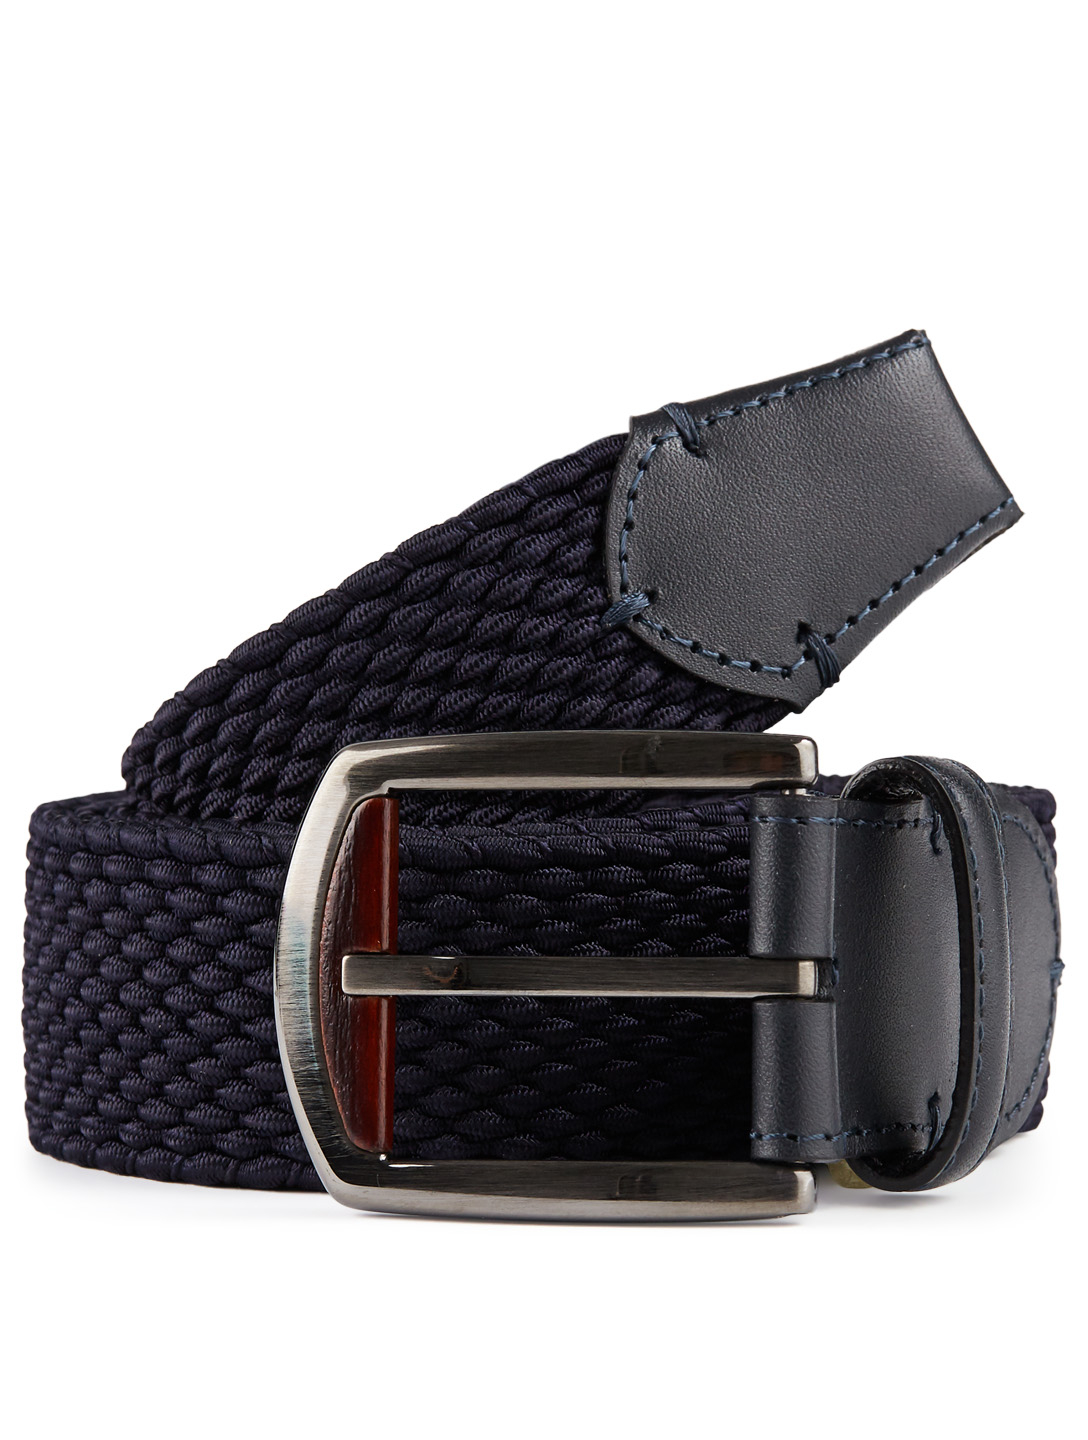 ERMENEGILDO ZEGNA Woven Belt Men's Blue